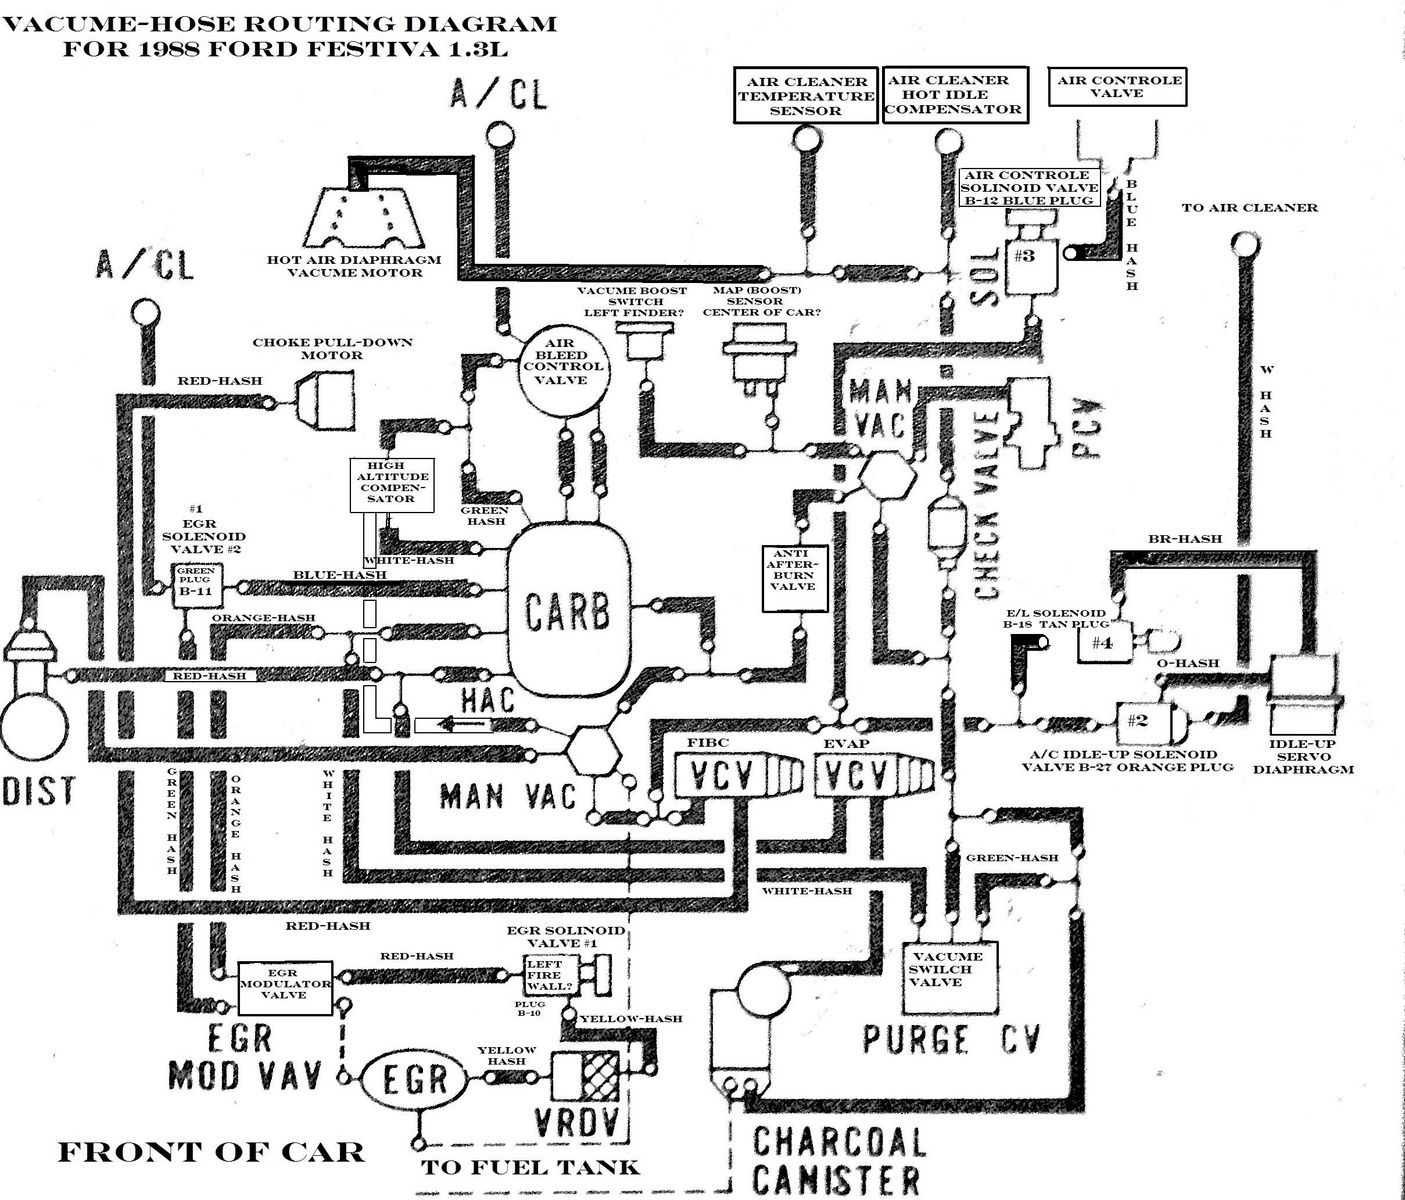 1997 Ford Festiva Wiring Diagram, 1997, Free Engine Image